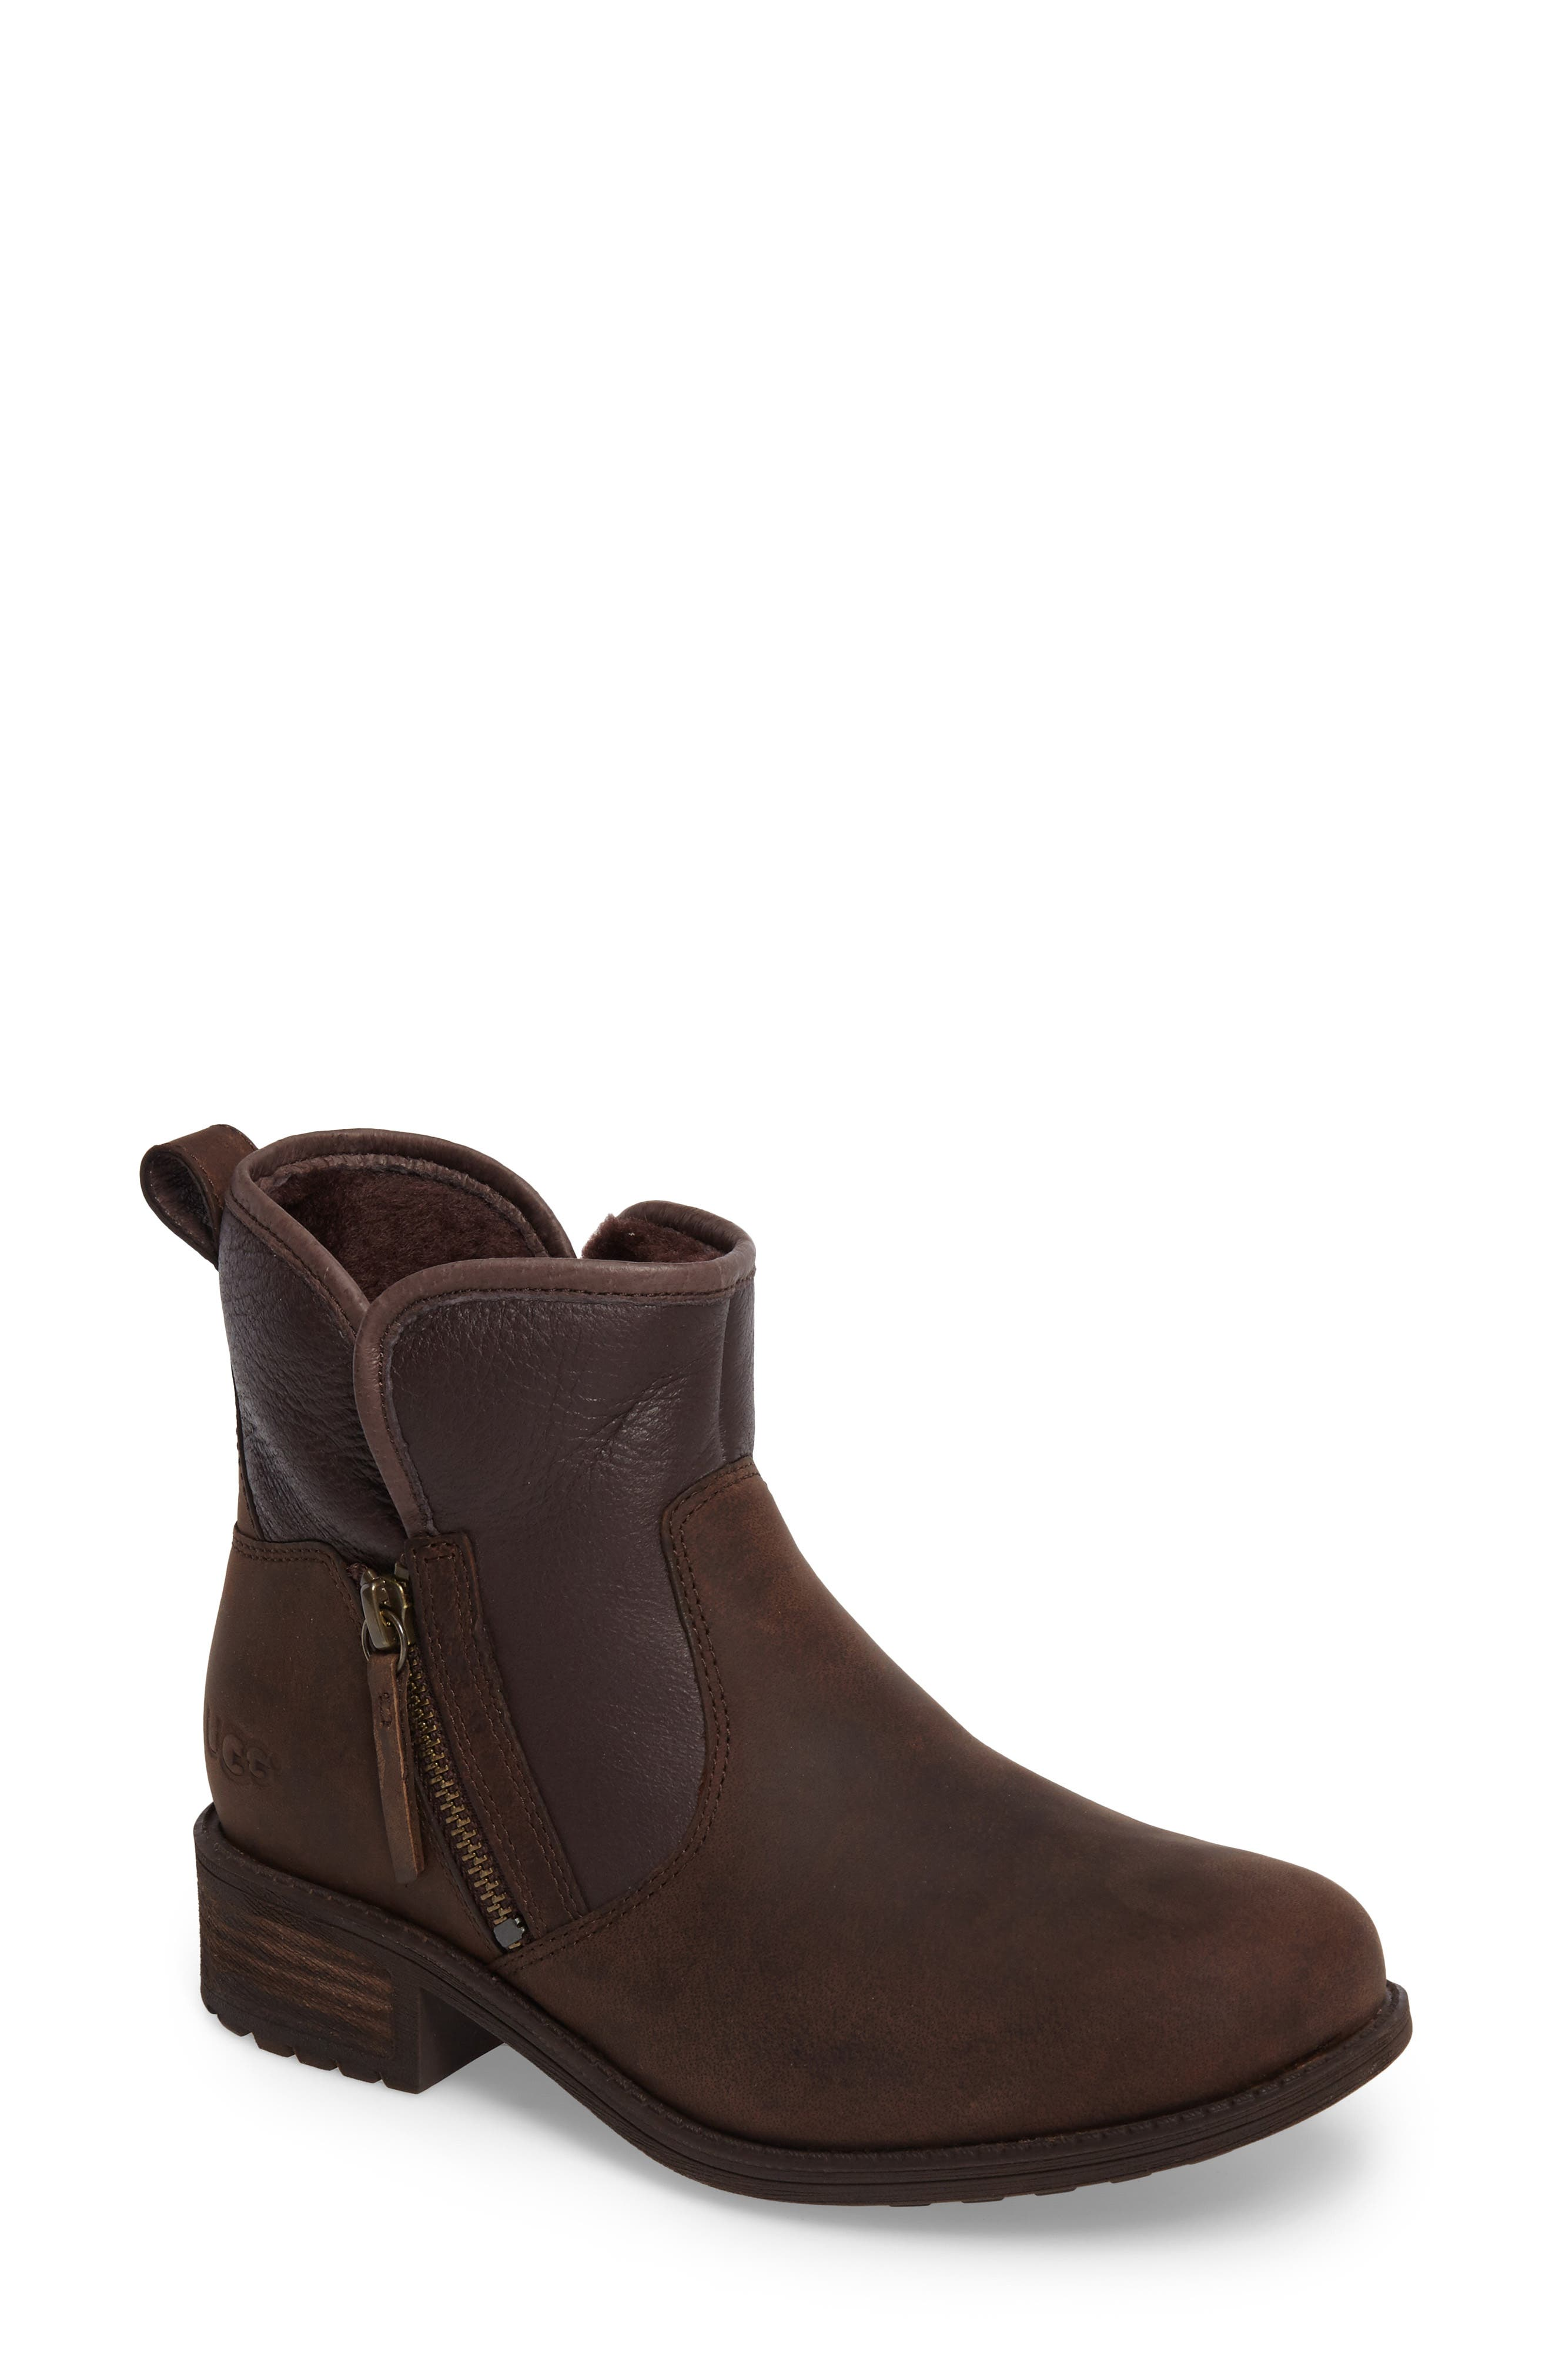 Alternate Image 1 Selected - UGG® Lavelle Boot (Women)